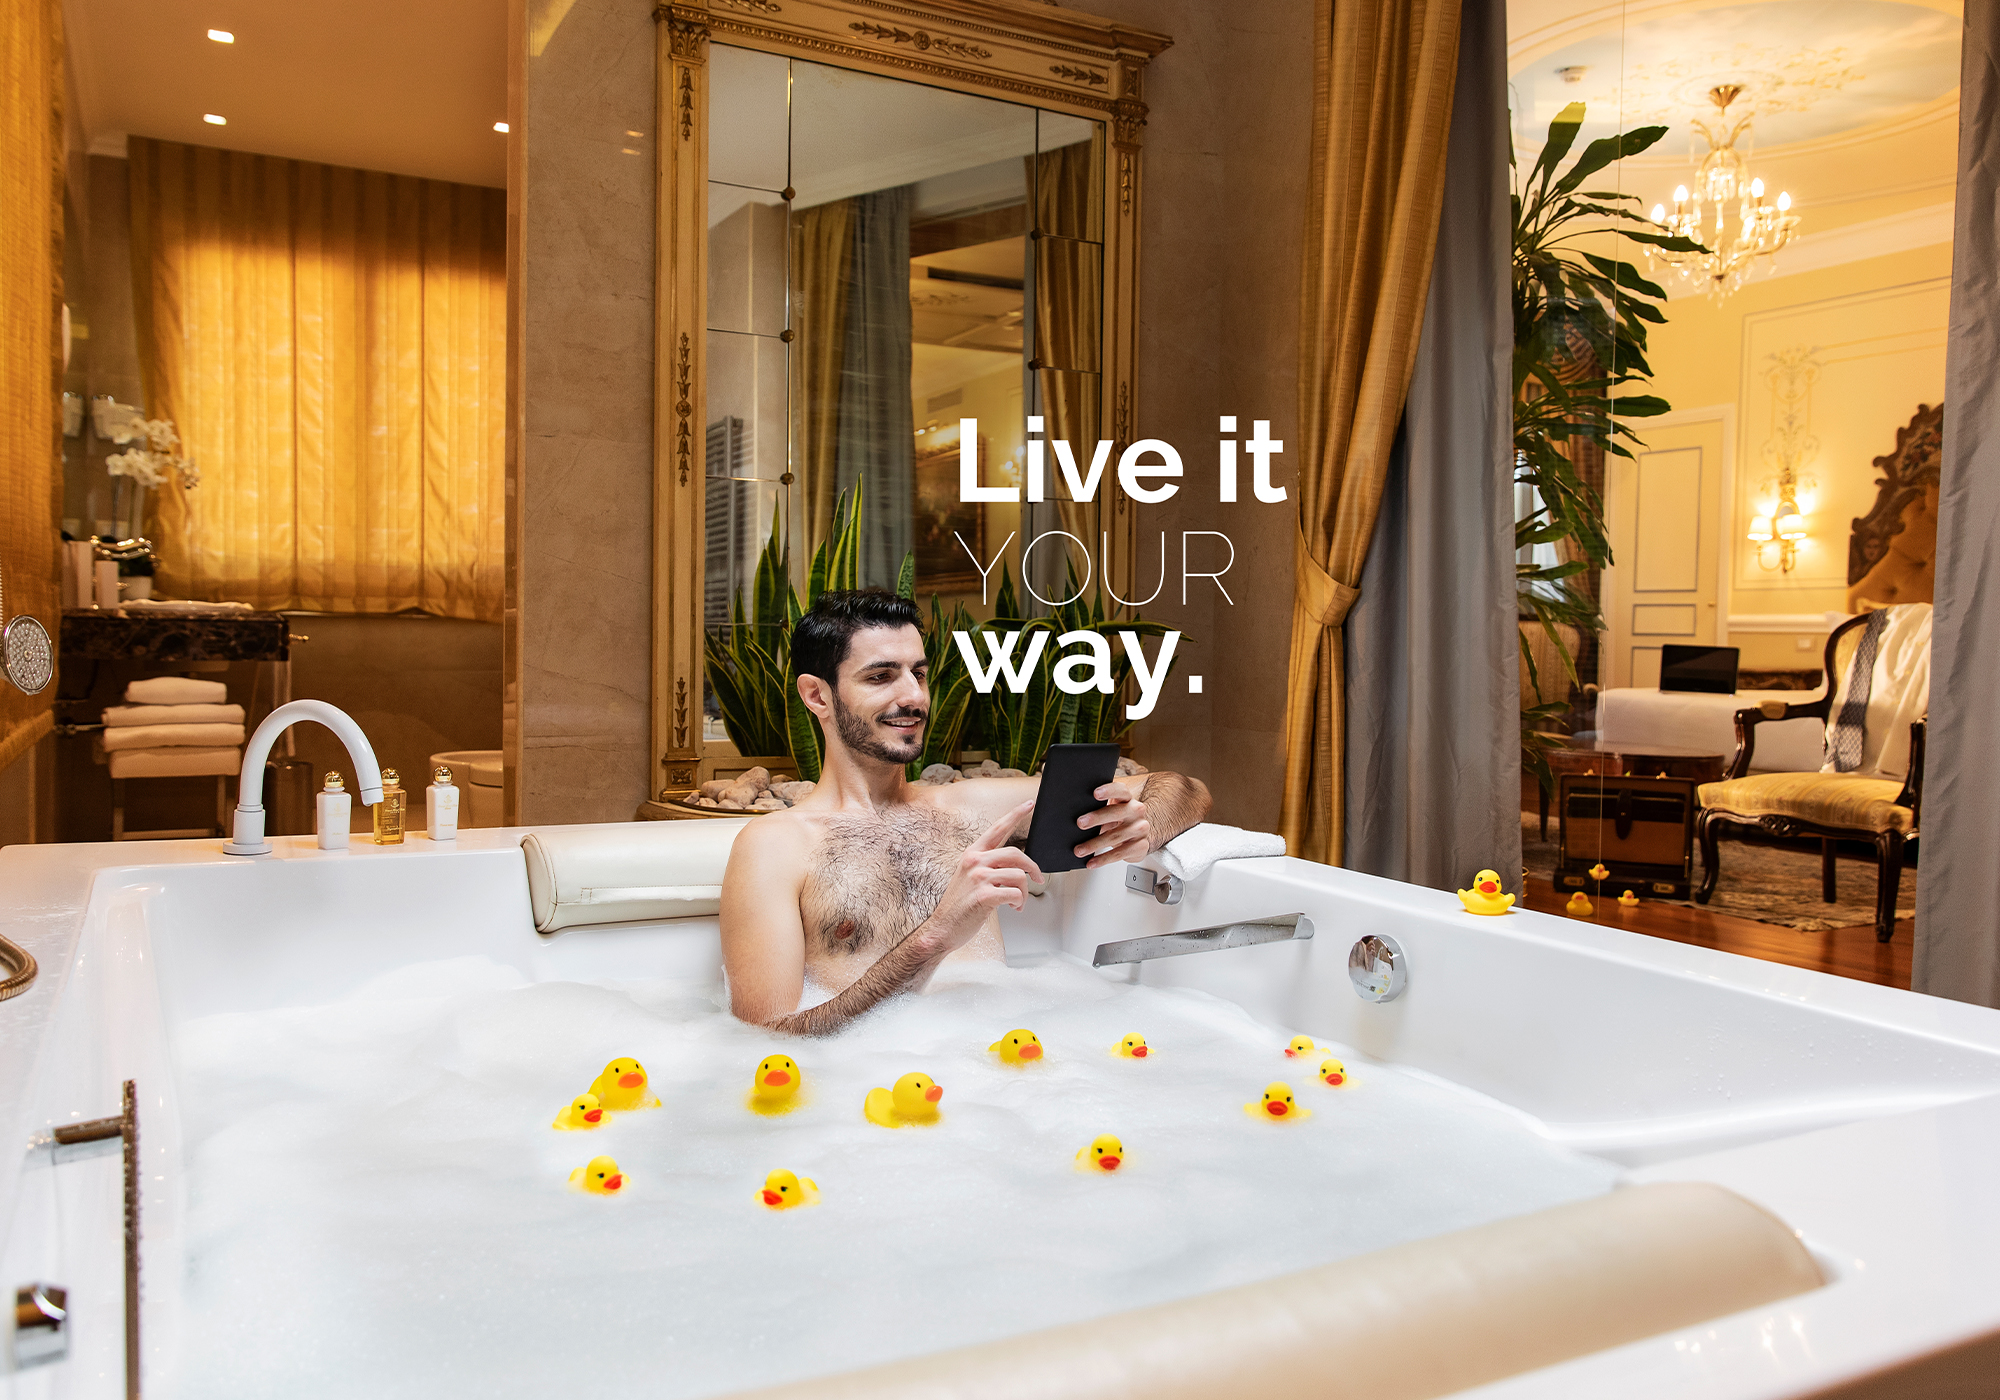 business_man_grand_Hotel_ritz_Live_it_your_way_the_method_agency